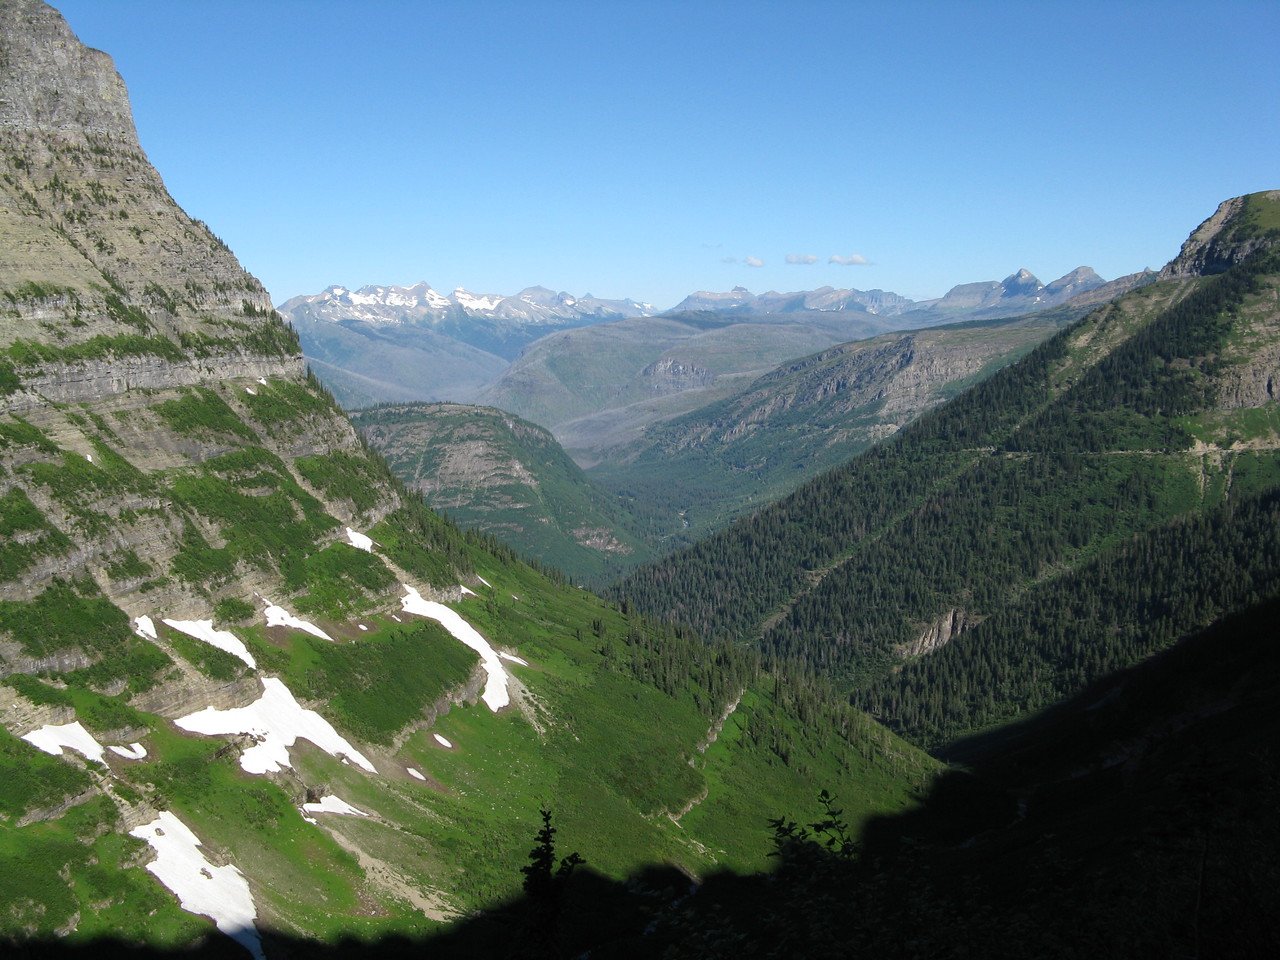 Looking down the valley to the northwest.